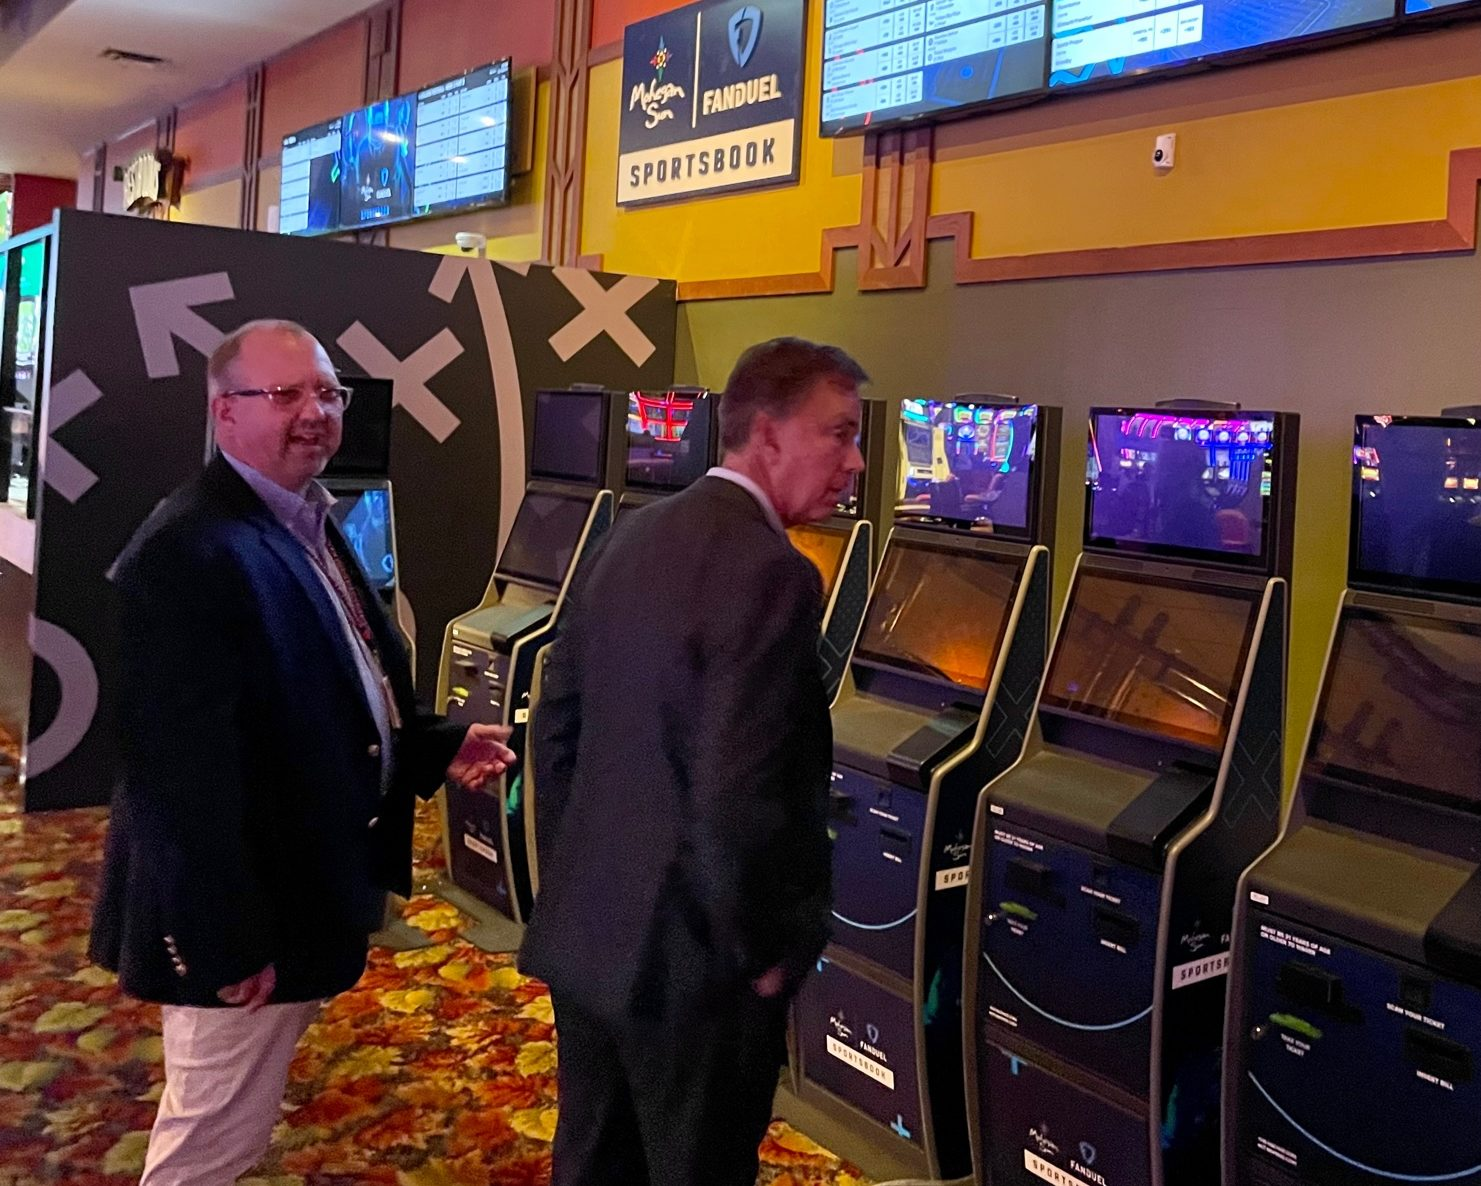 Before sports betting opens, Connecticut addresses problem gambling